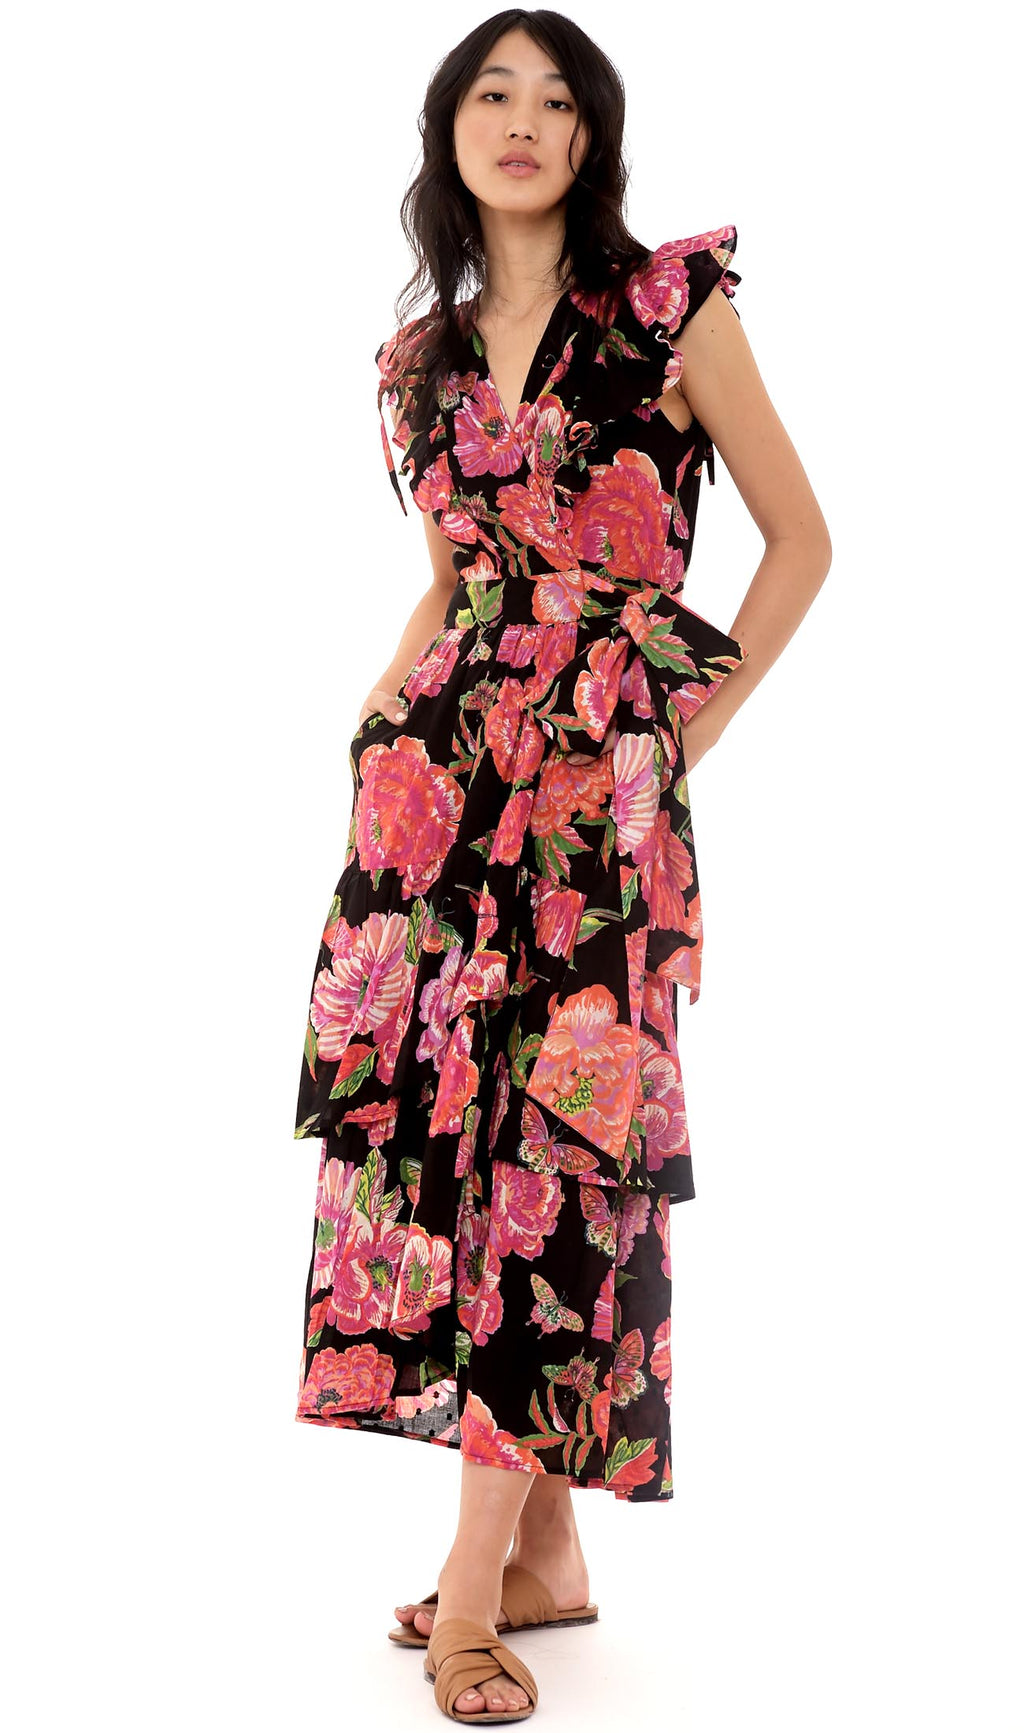 Banjanan Carra Dress Eliza's Rose Garden Black